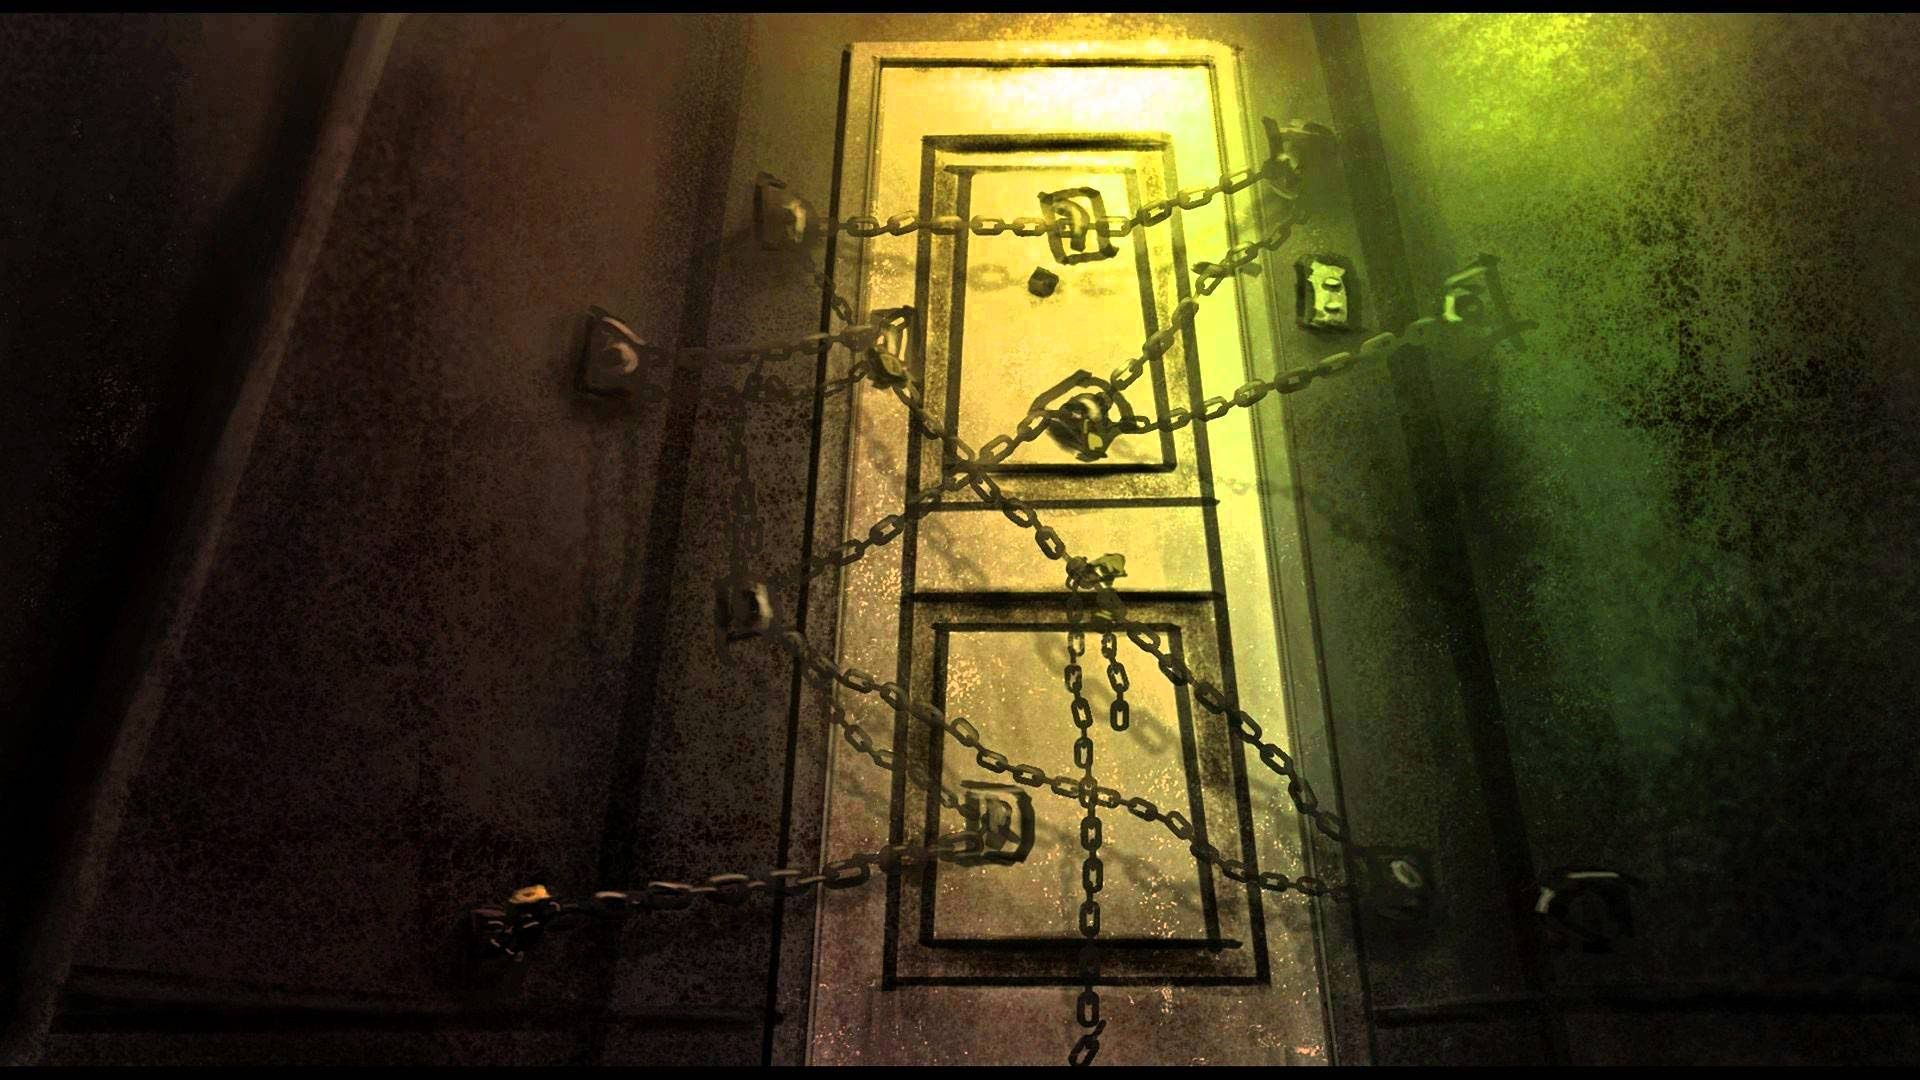 House Of 1000 Doors Evil Inside I Really Liked That Game Even If It Is Not Quite As Well As The Other Parts Of The Series In My Opinion The Gameplay Was 5